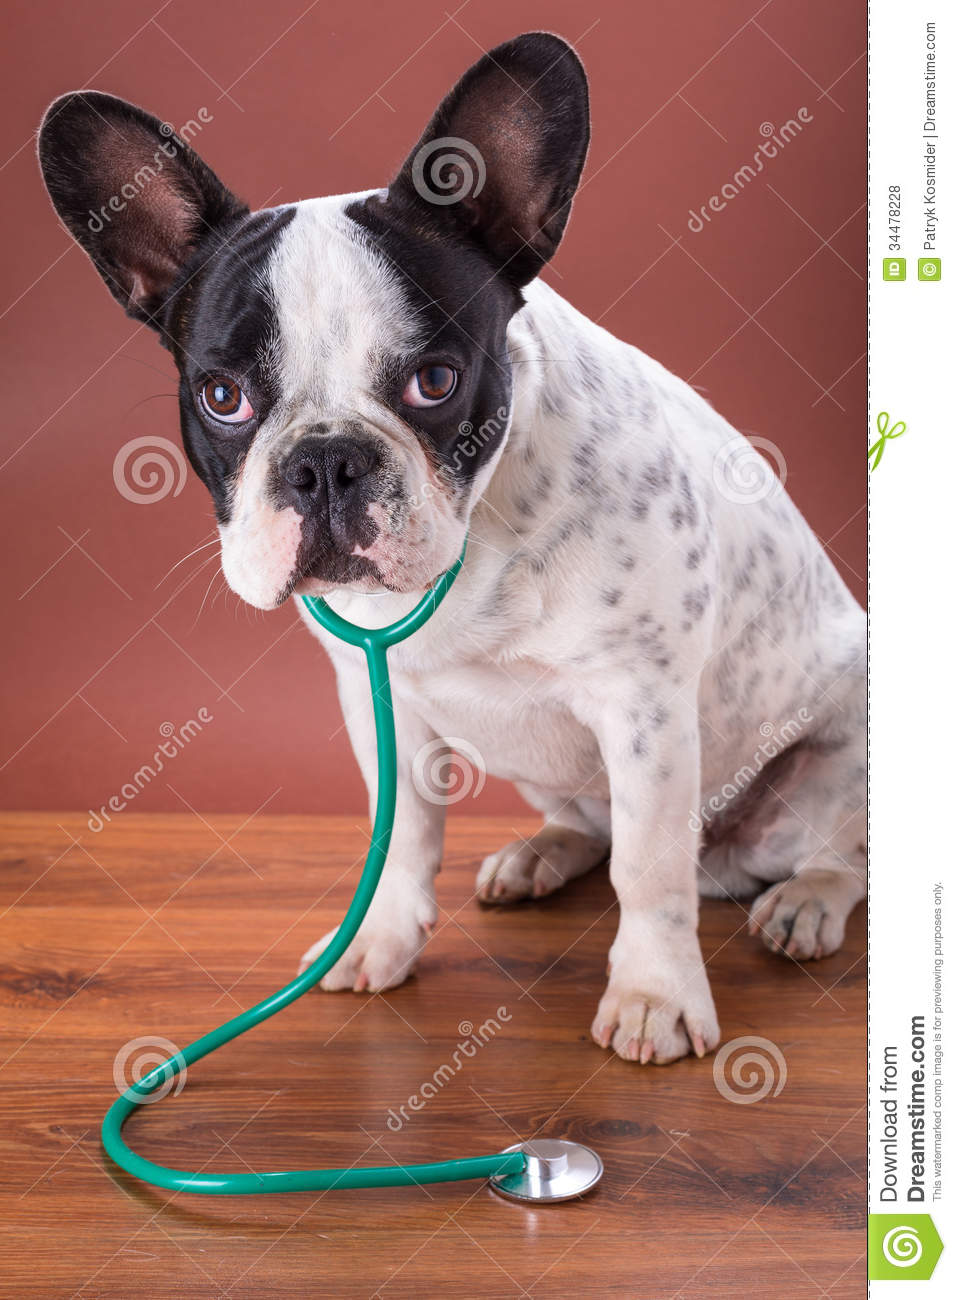 French Bulldog Wearing A Stethoscope Royalty Free Stock